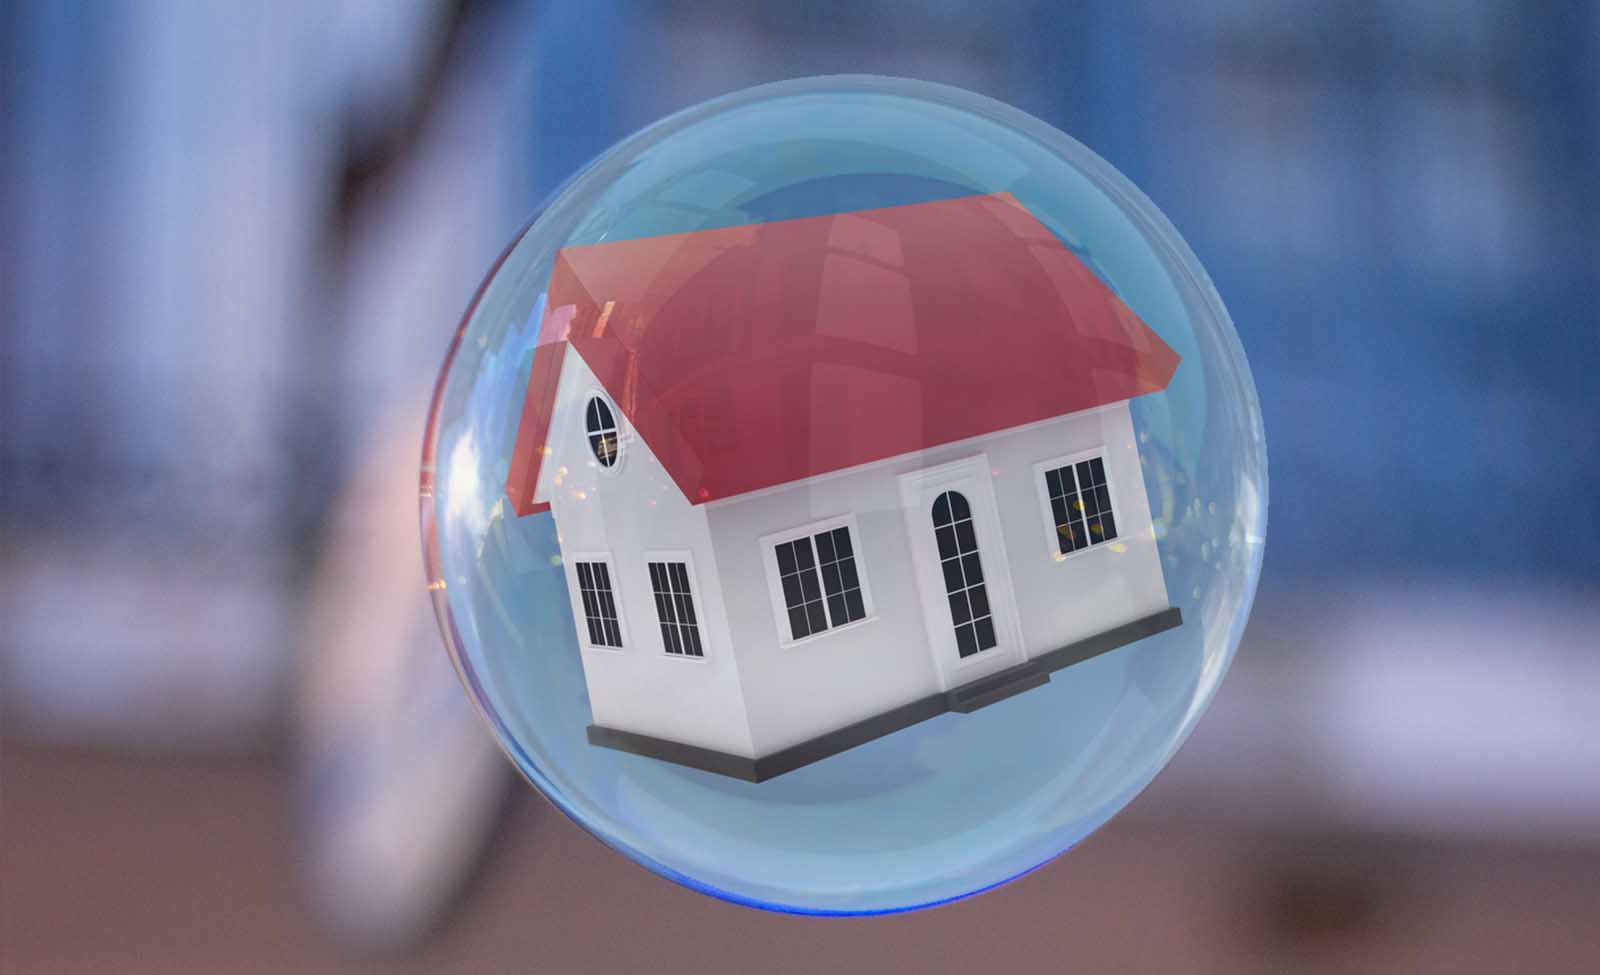 Housing Bubble - Not the kind you're thinking of